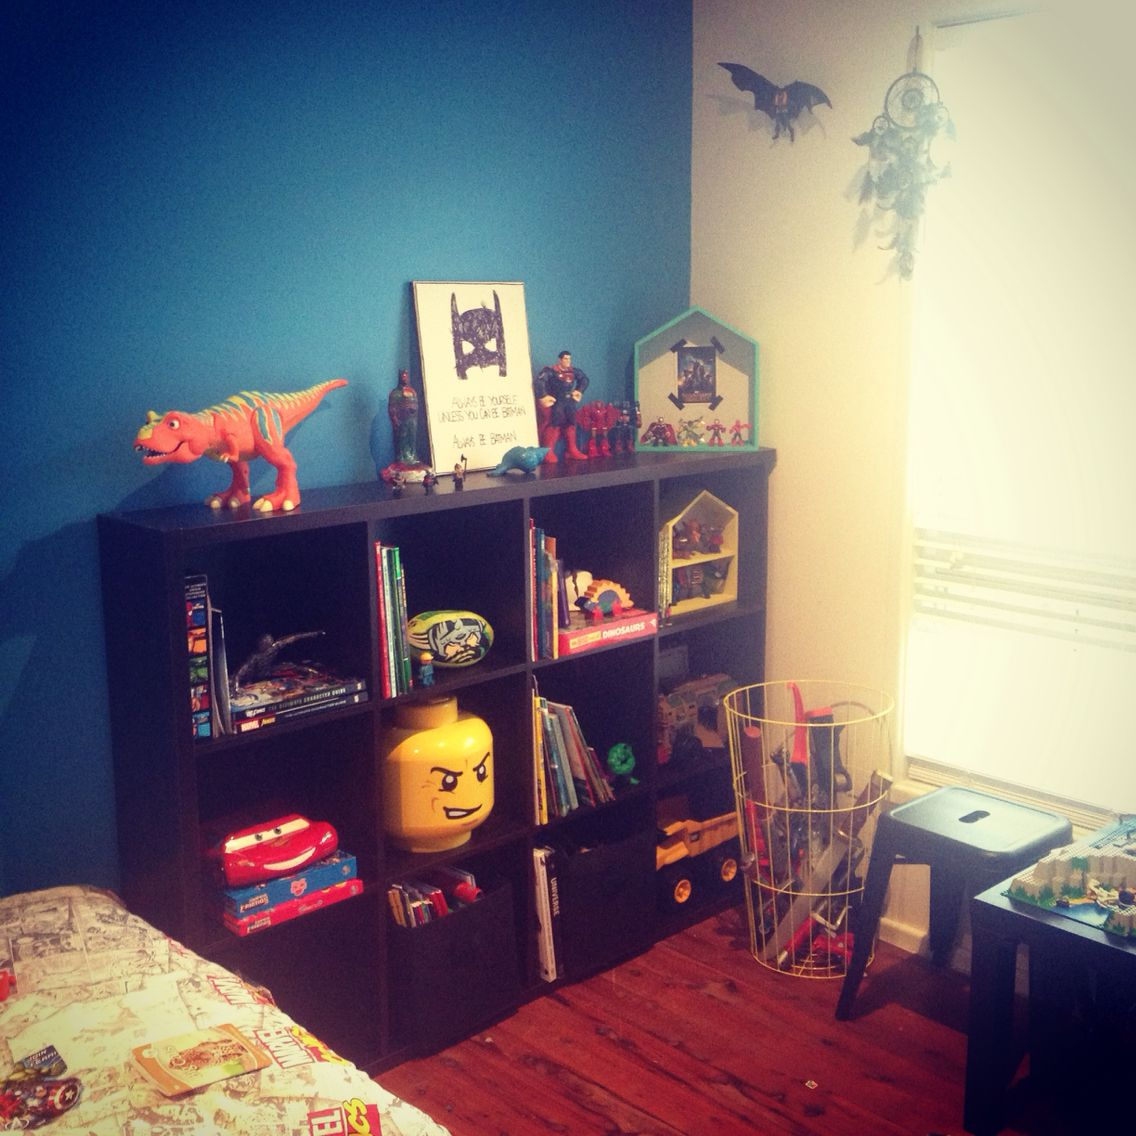 Ashton's new cube shelf for book and toy storage/display